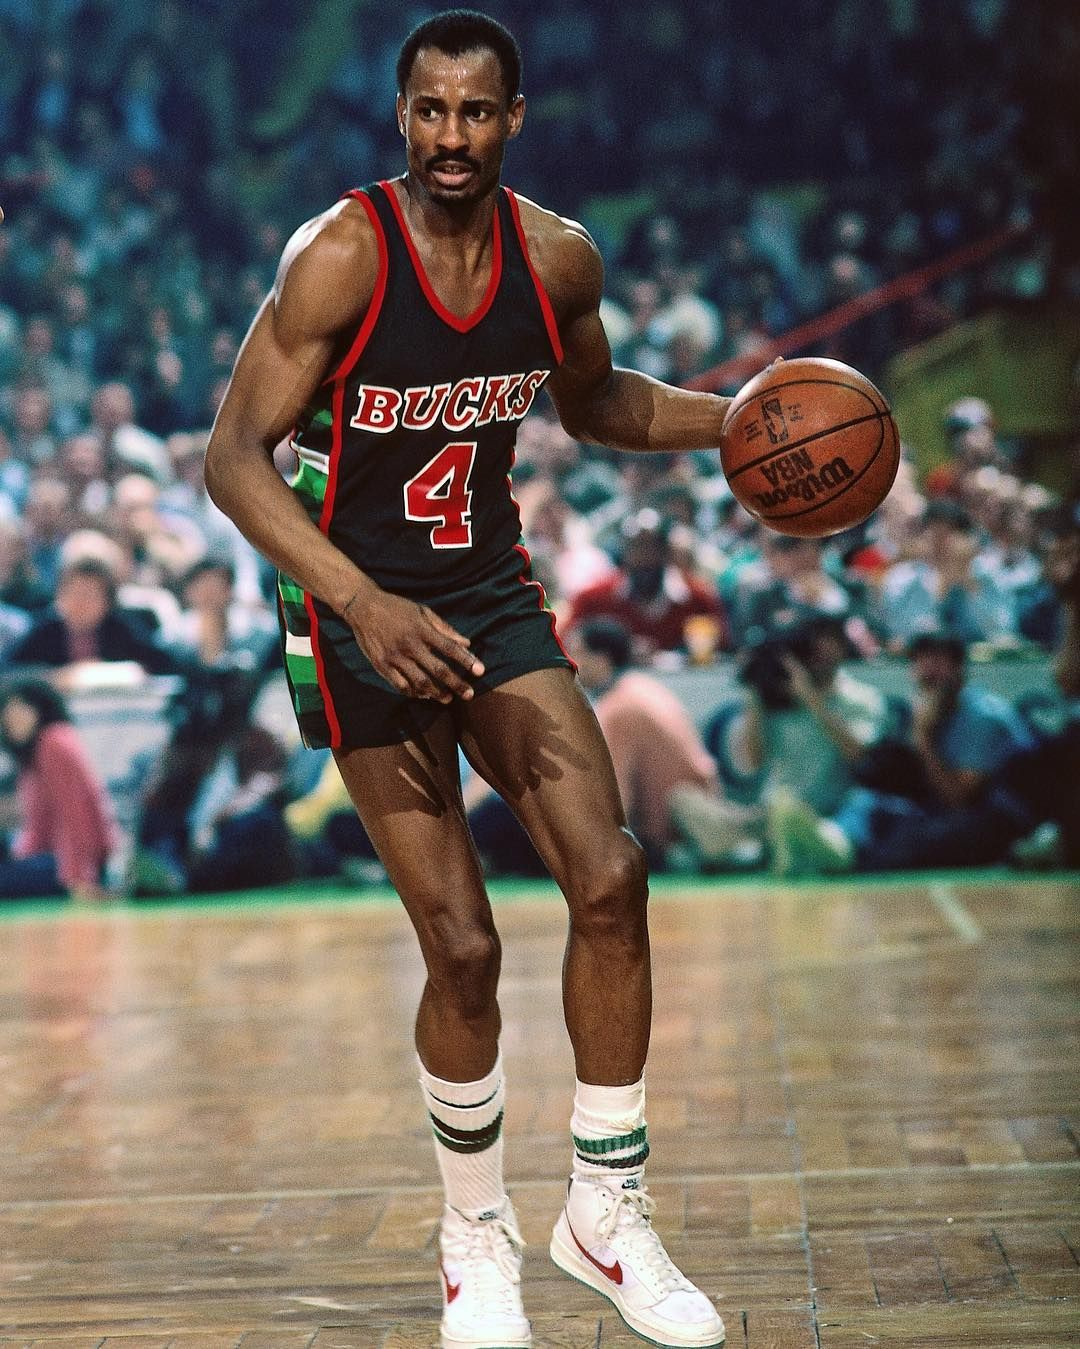 1983 Eastern Conference Semis Game 1 Sidney Moncrief 22p 8r 4a